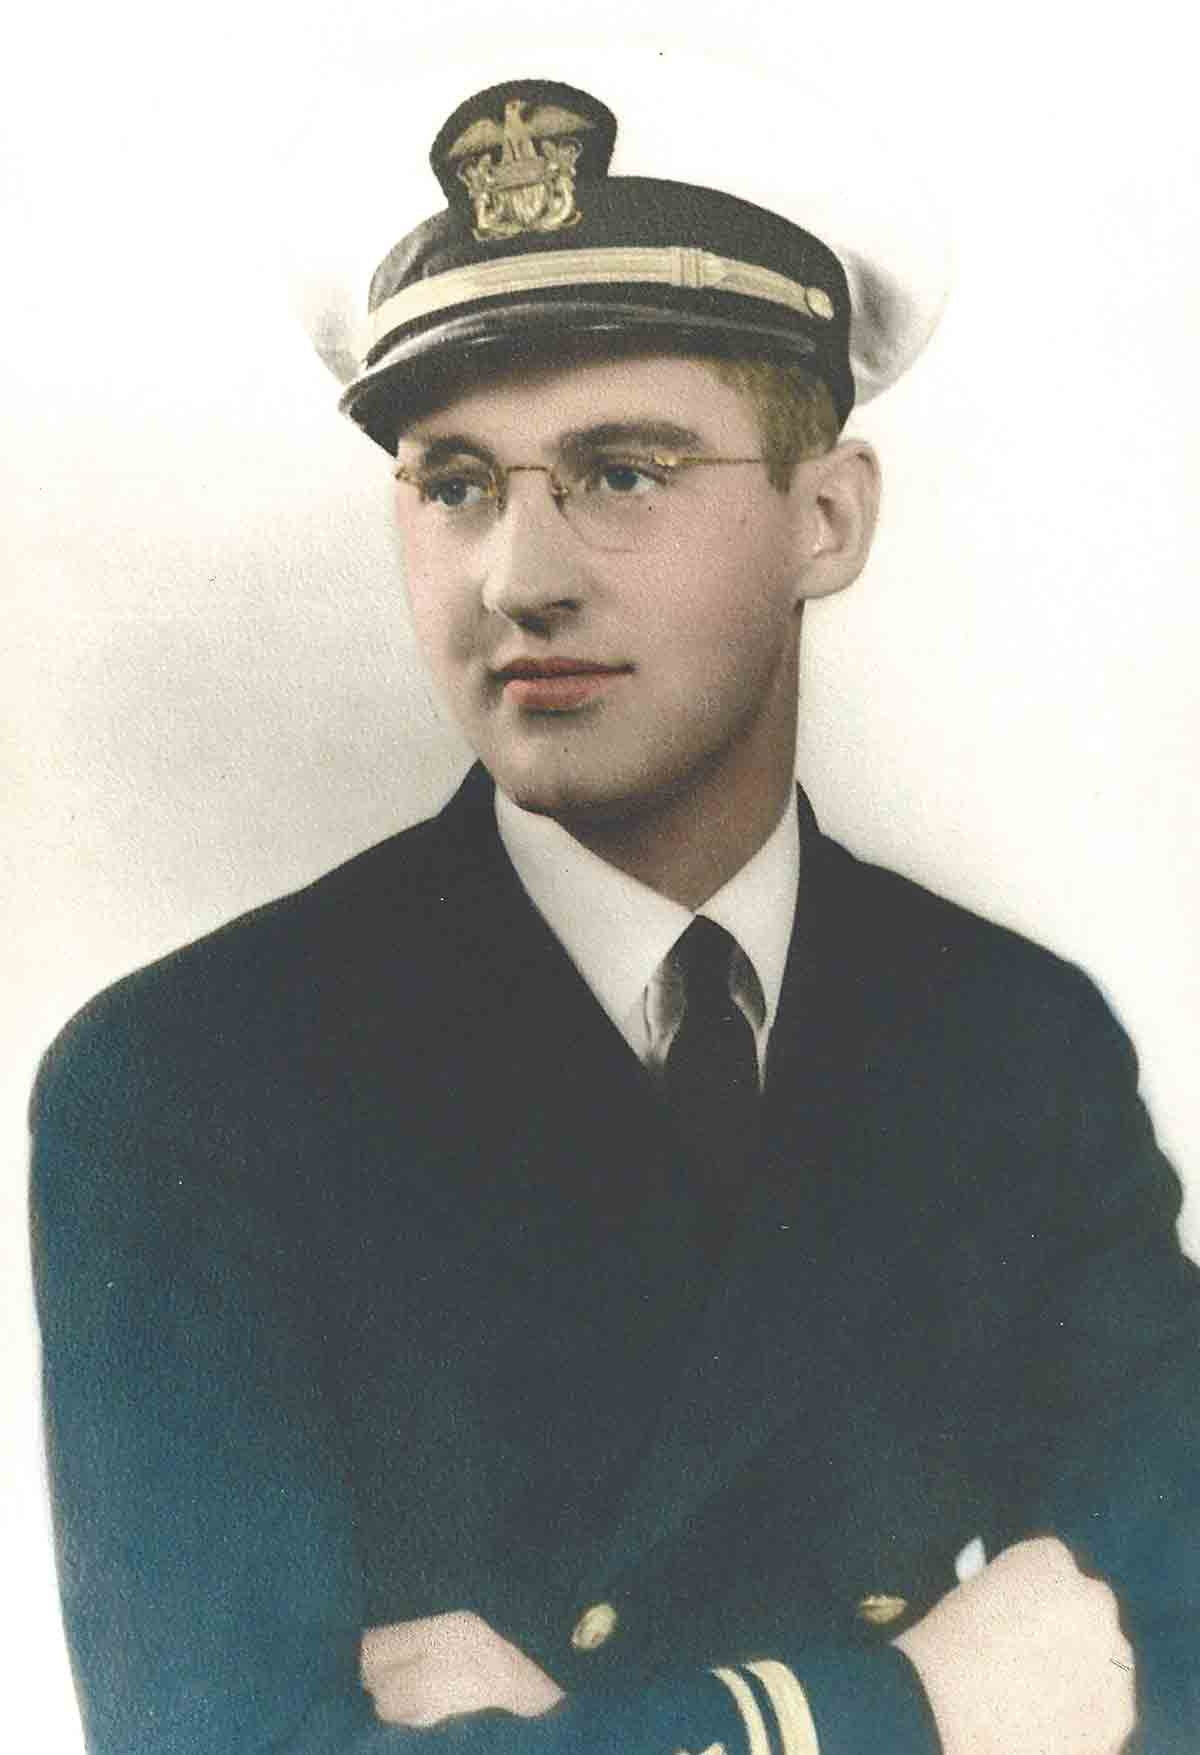 Aloysius SchmittPentagon upgrades WWII medal for Schmitt(AP) The Pentagon has approved a Silver Star medal of heroism for a Navy chaplain from Iowa who's been credited with helping sailors escape a battleship during the Japanese attack on Pearl...